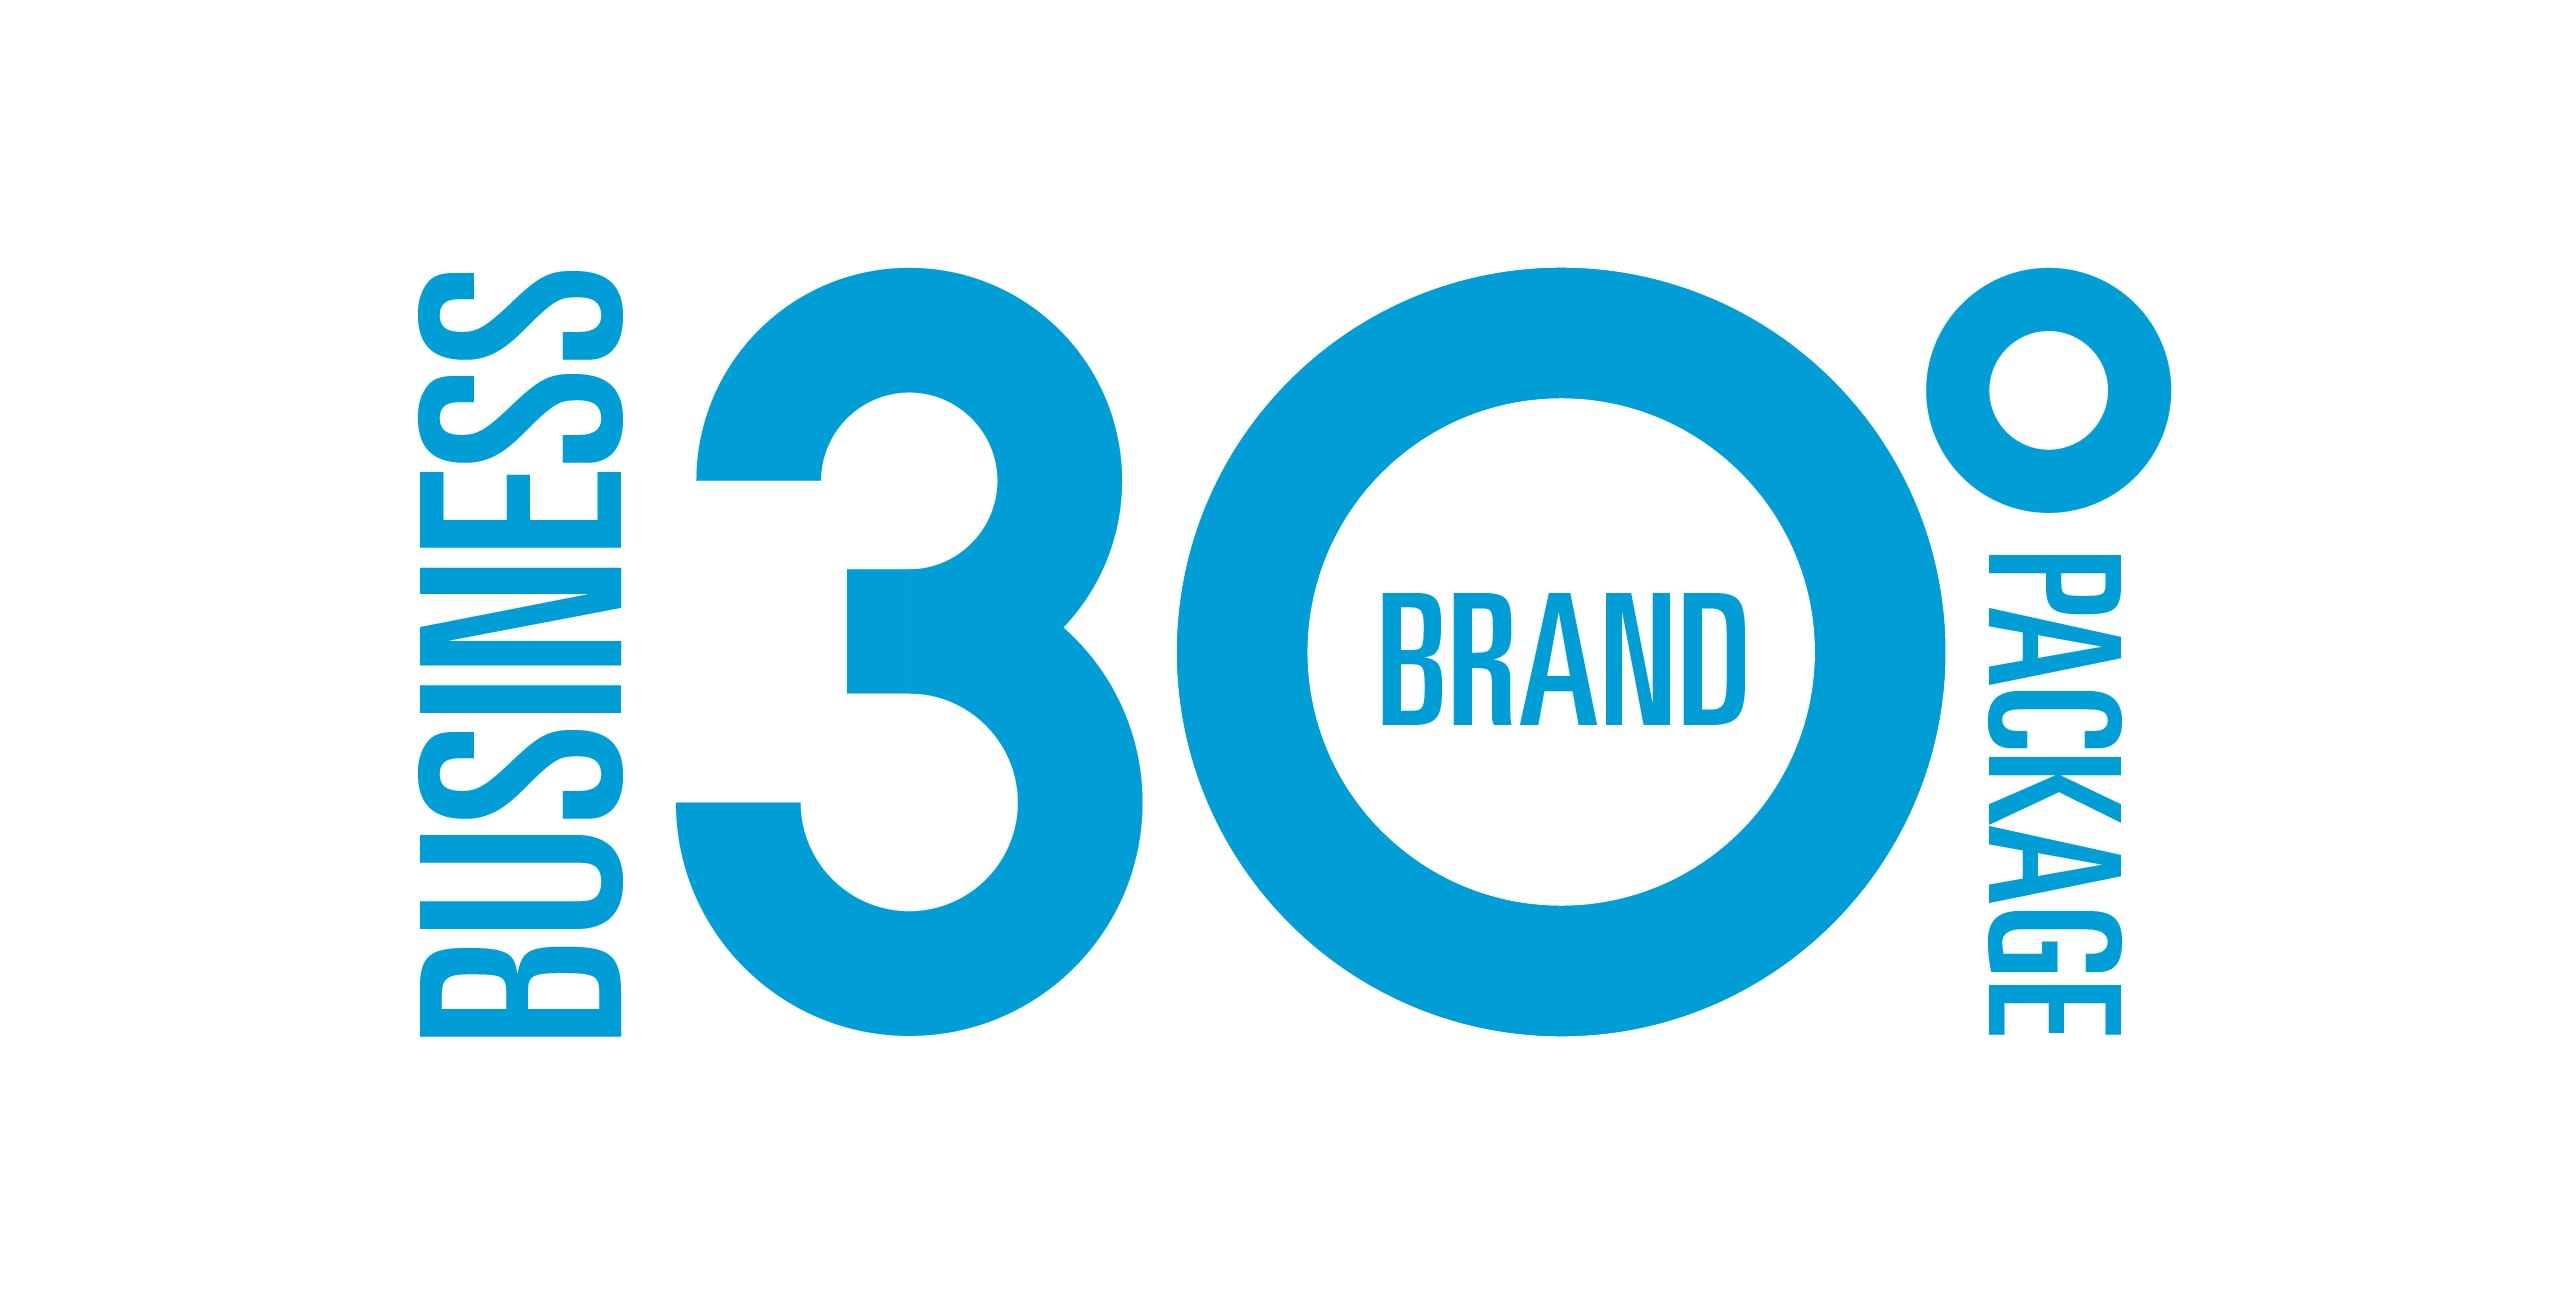 Right Angle Creative brand packages symbol design 30 business